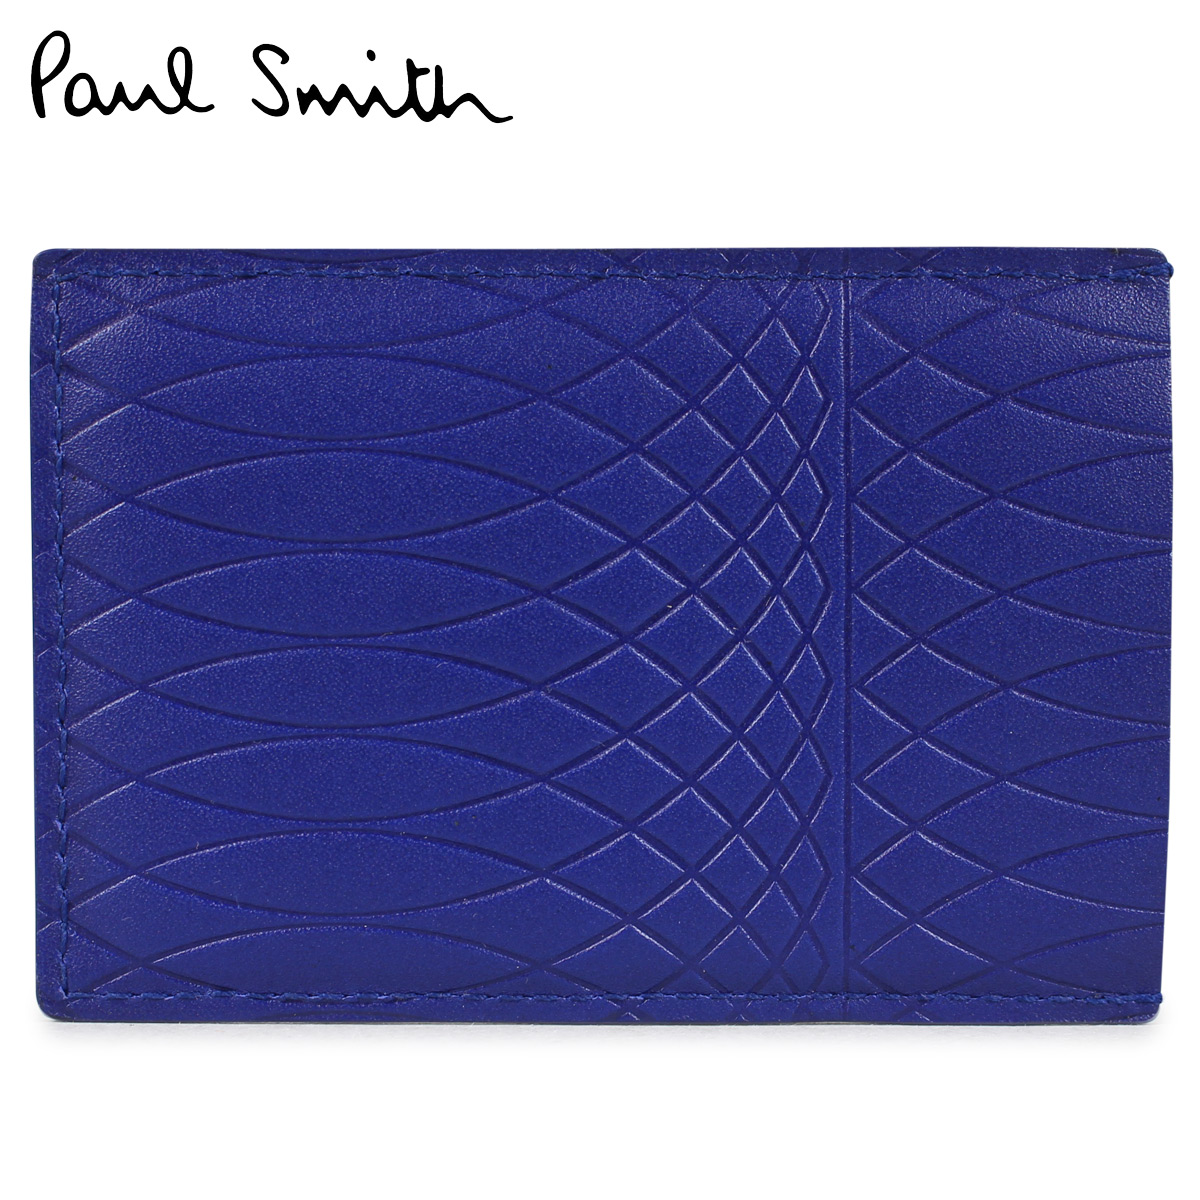 8a818e748dbc Paul Smith of the founder and the designer is superior in a styling power  in particular and develops the collection to open width of mode.